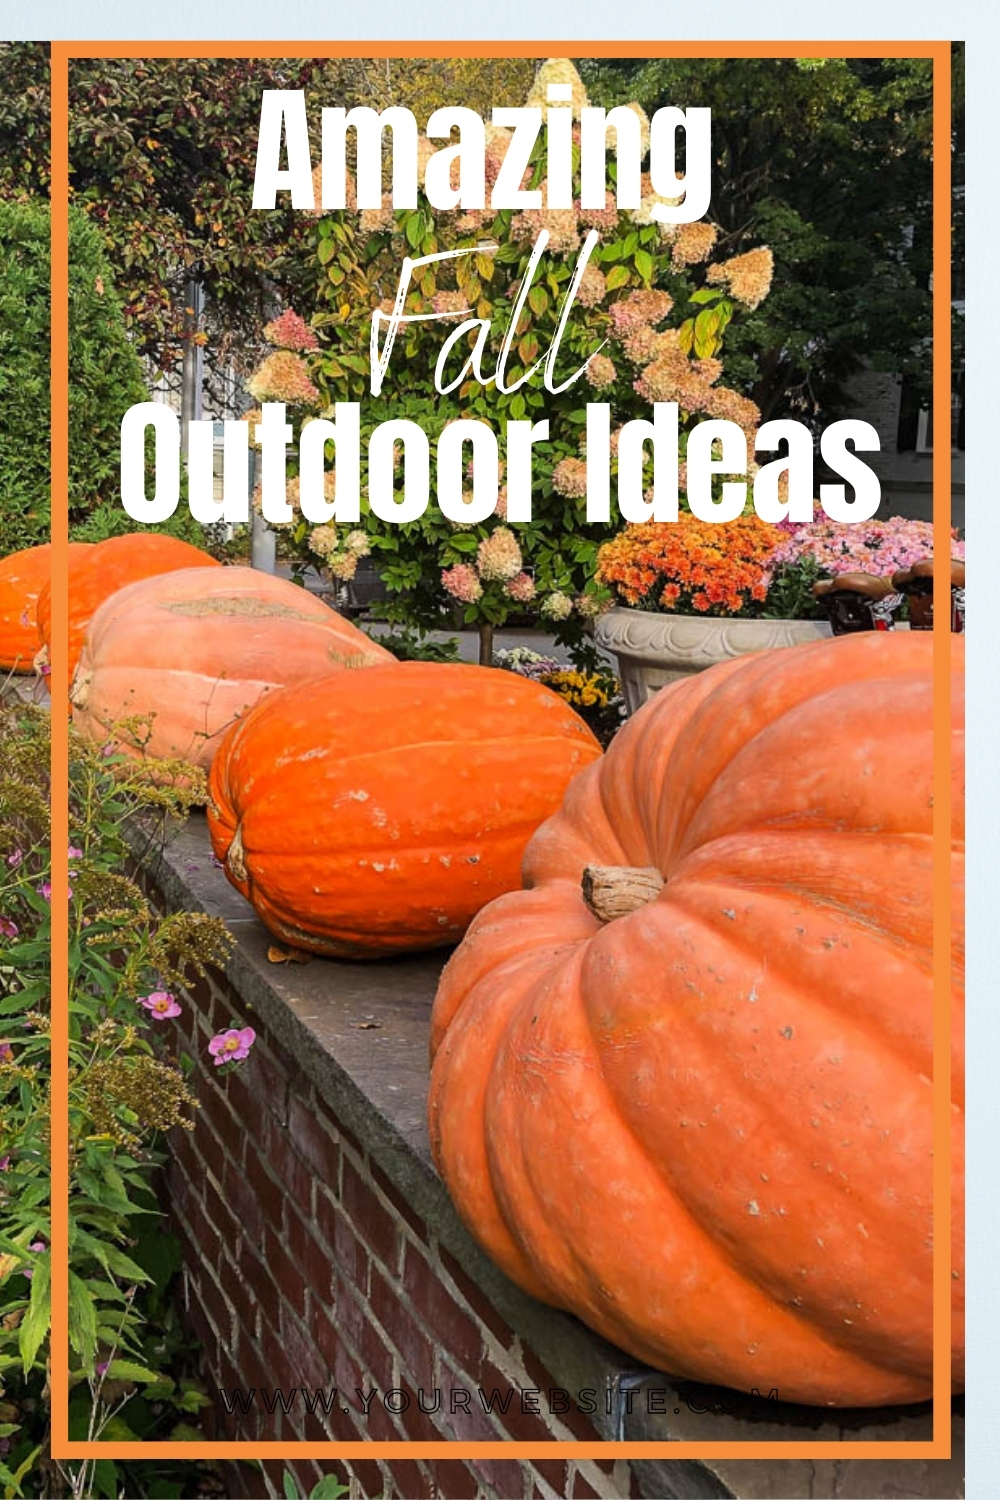 Amazing Fall Outdoor Ideas - Get ideas for creating amazing fall displays for your porch, house, and yard. via @spaula